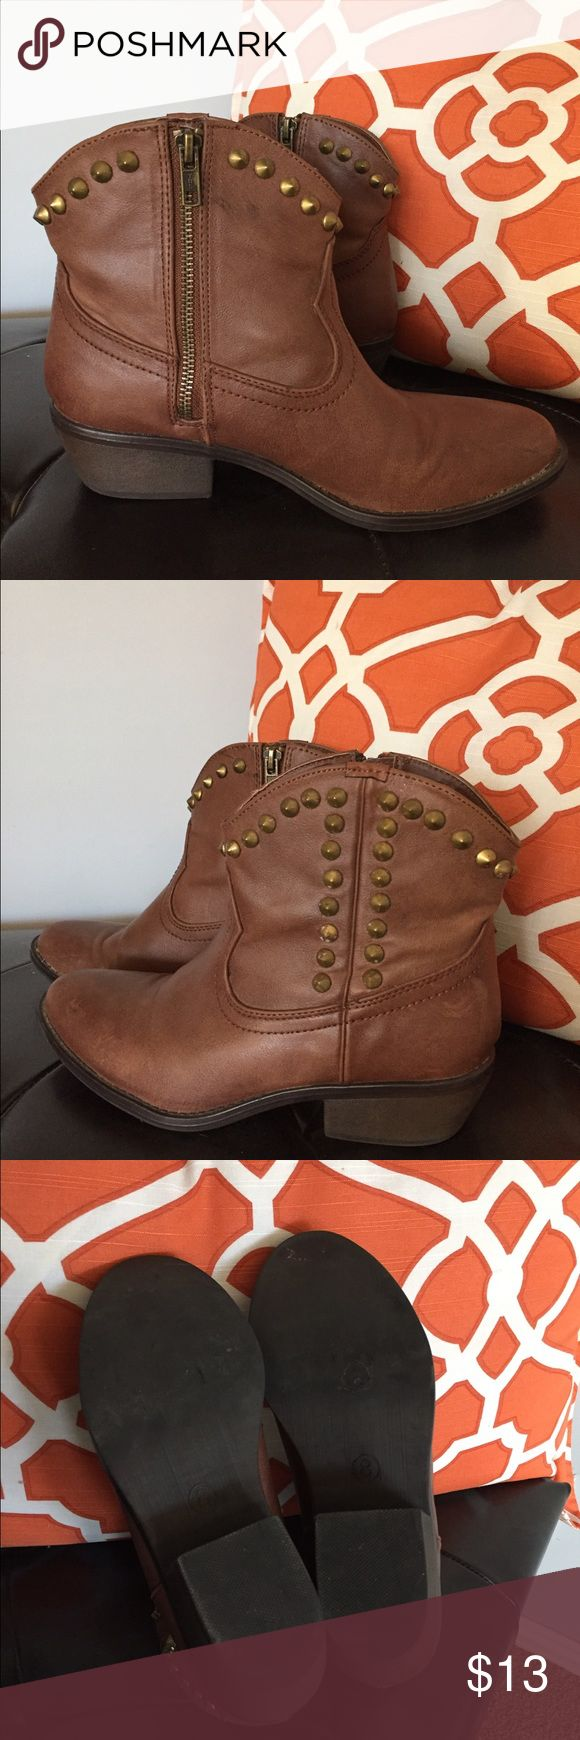 Brown ankle boots with gold studs, cowboy style Brown ankle boots with gold stud details and inner zip. Cowboy style. Wore these to a cowboy bar with short shorts once. Shoes Ankle Boots & Booties